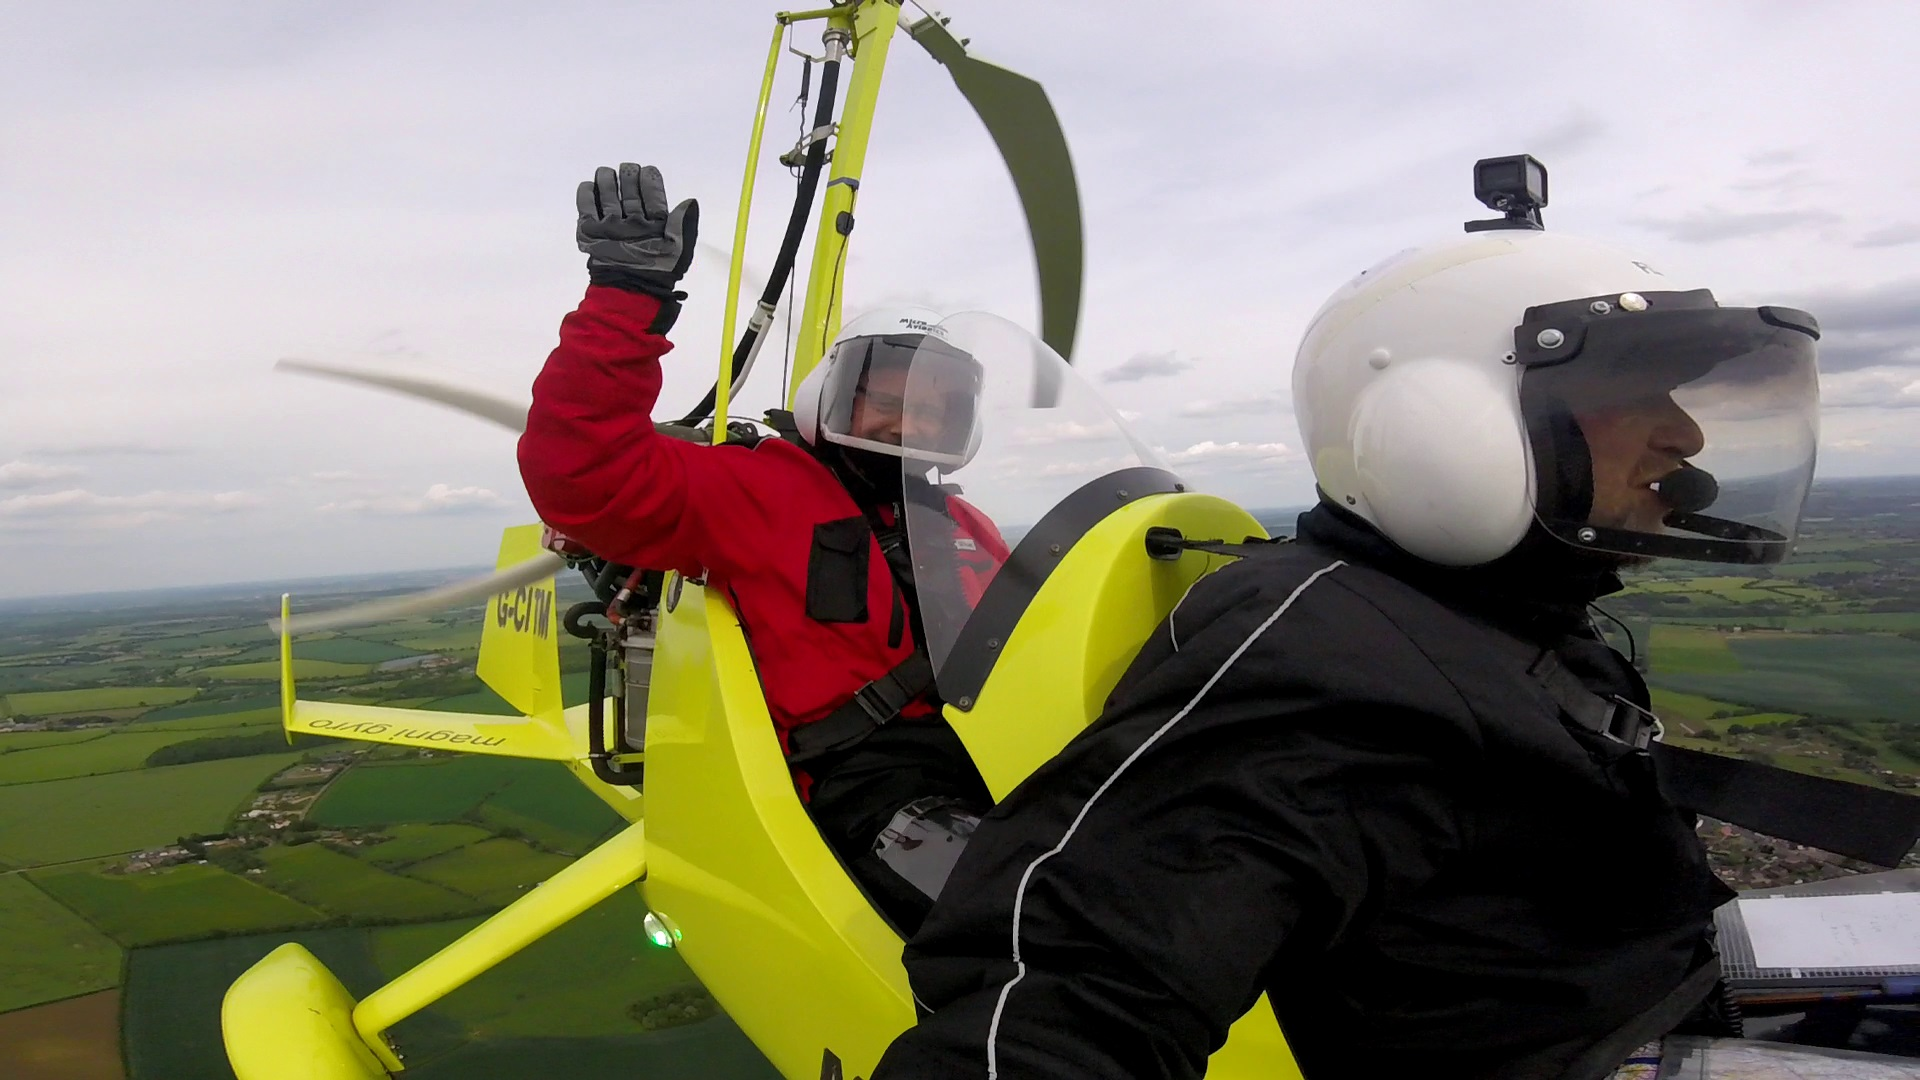 fun flying a Gyrocopter/Gyroplane